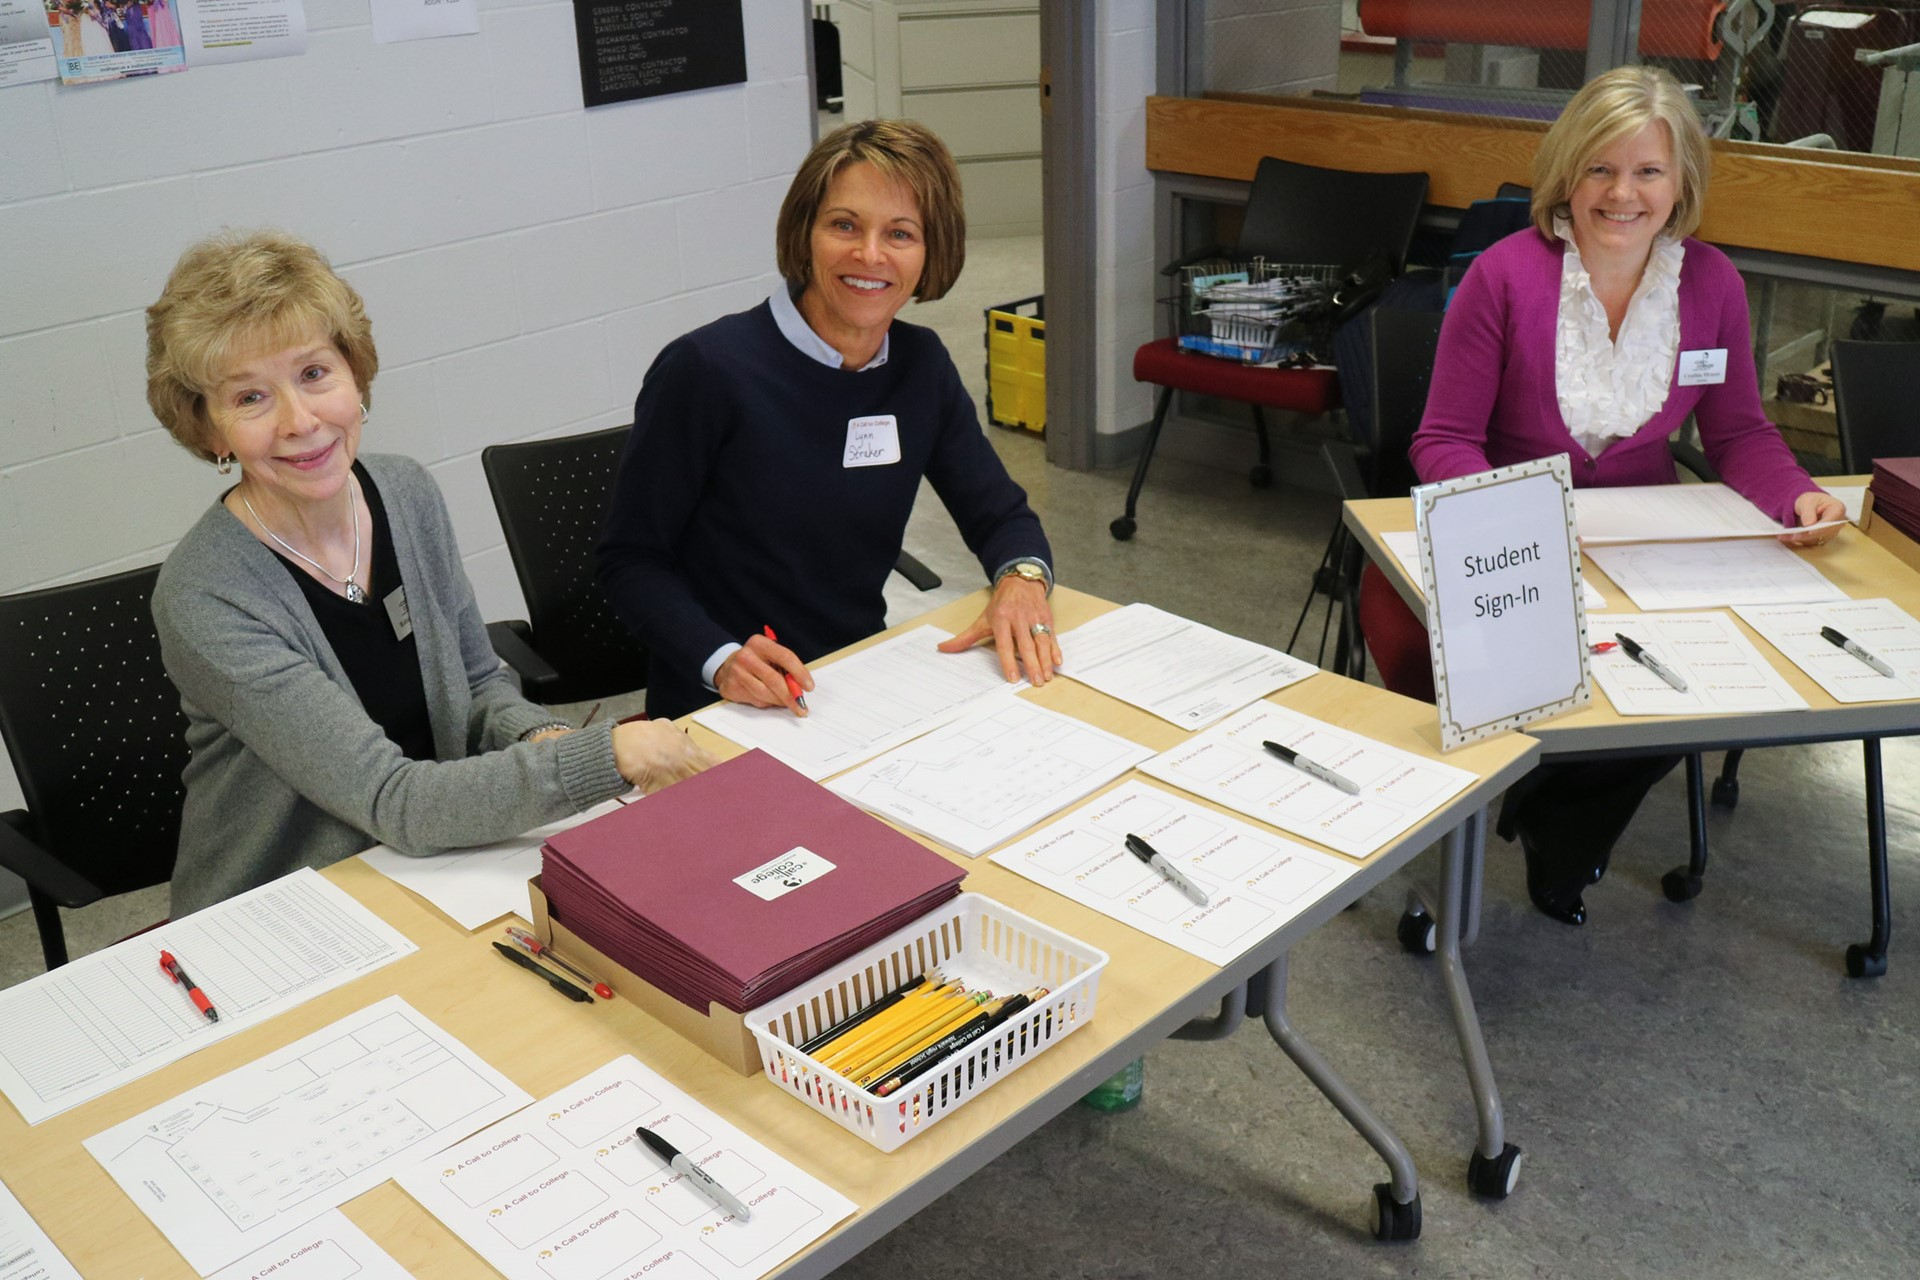 3 wonderful volunteers ready to go at the freshly cleaned check-in table